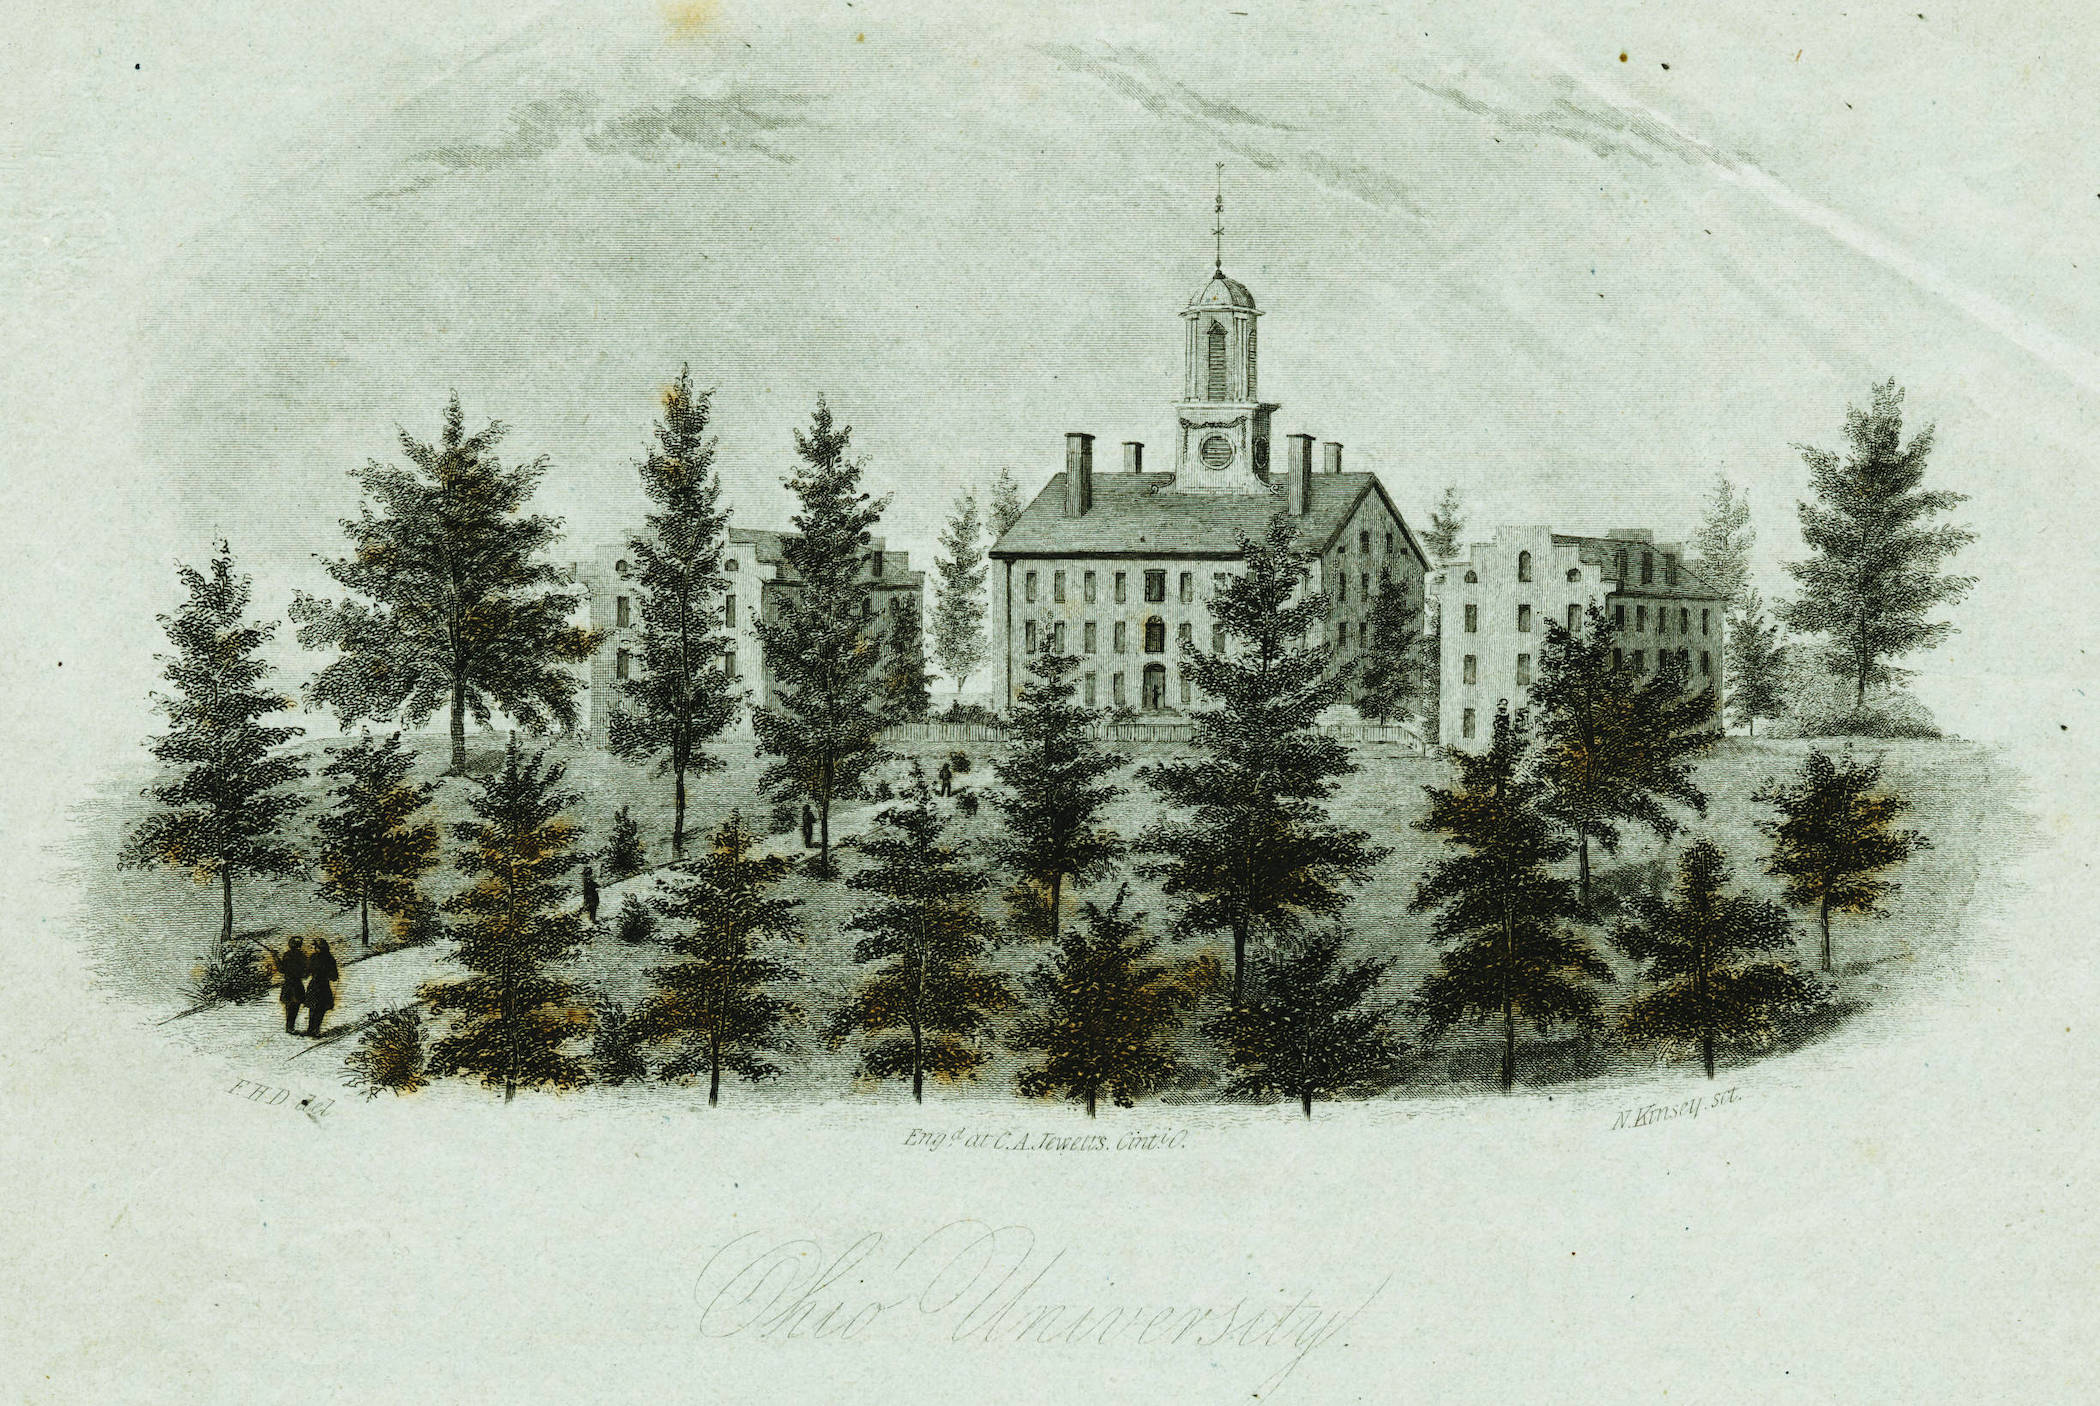 illustration of early OHIO building with trees